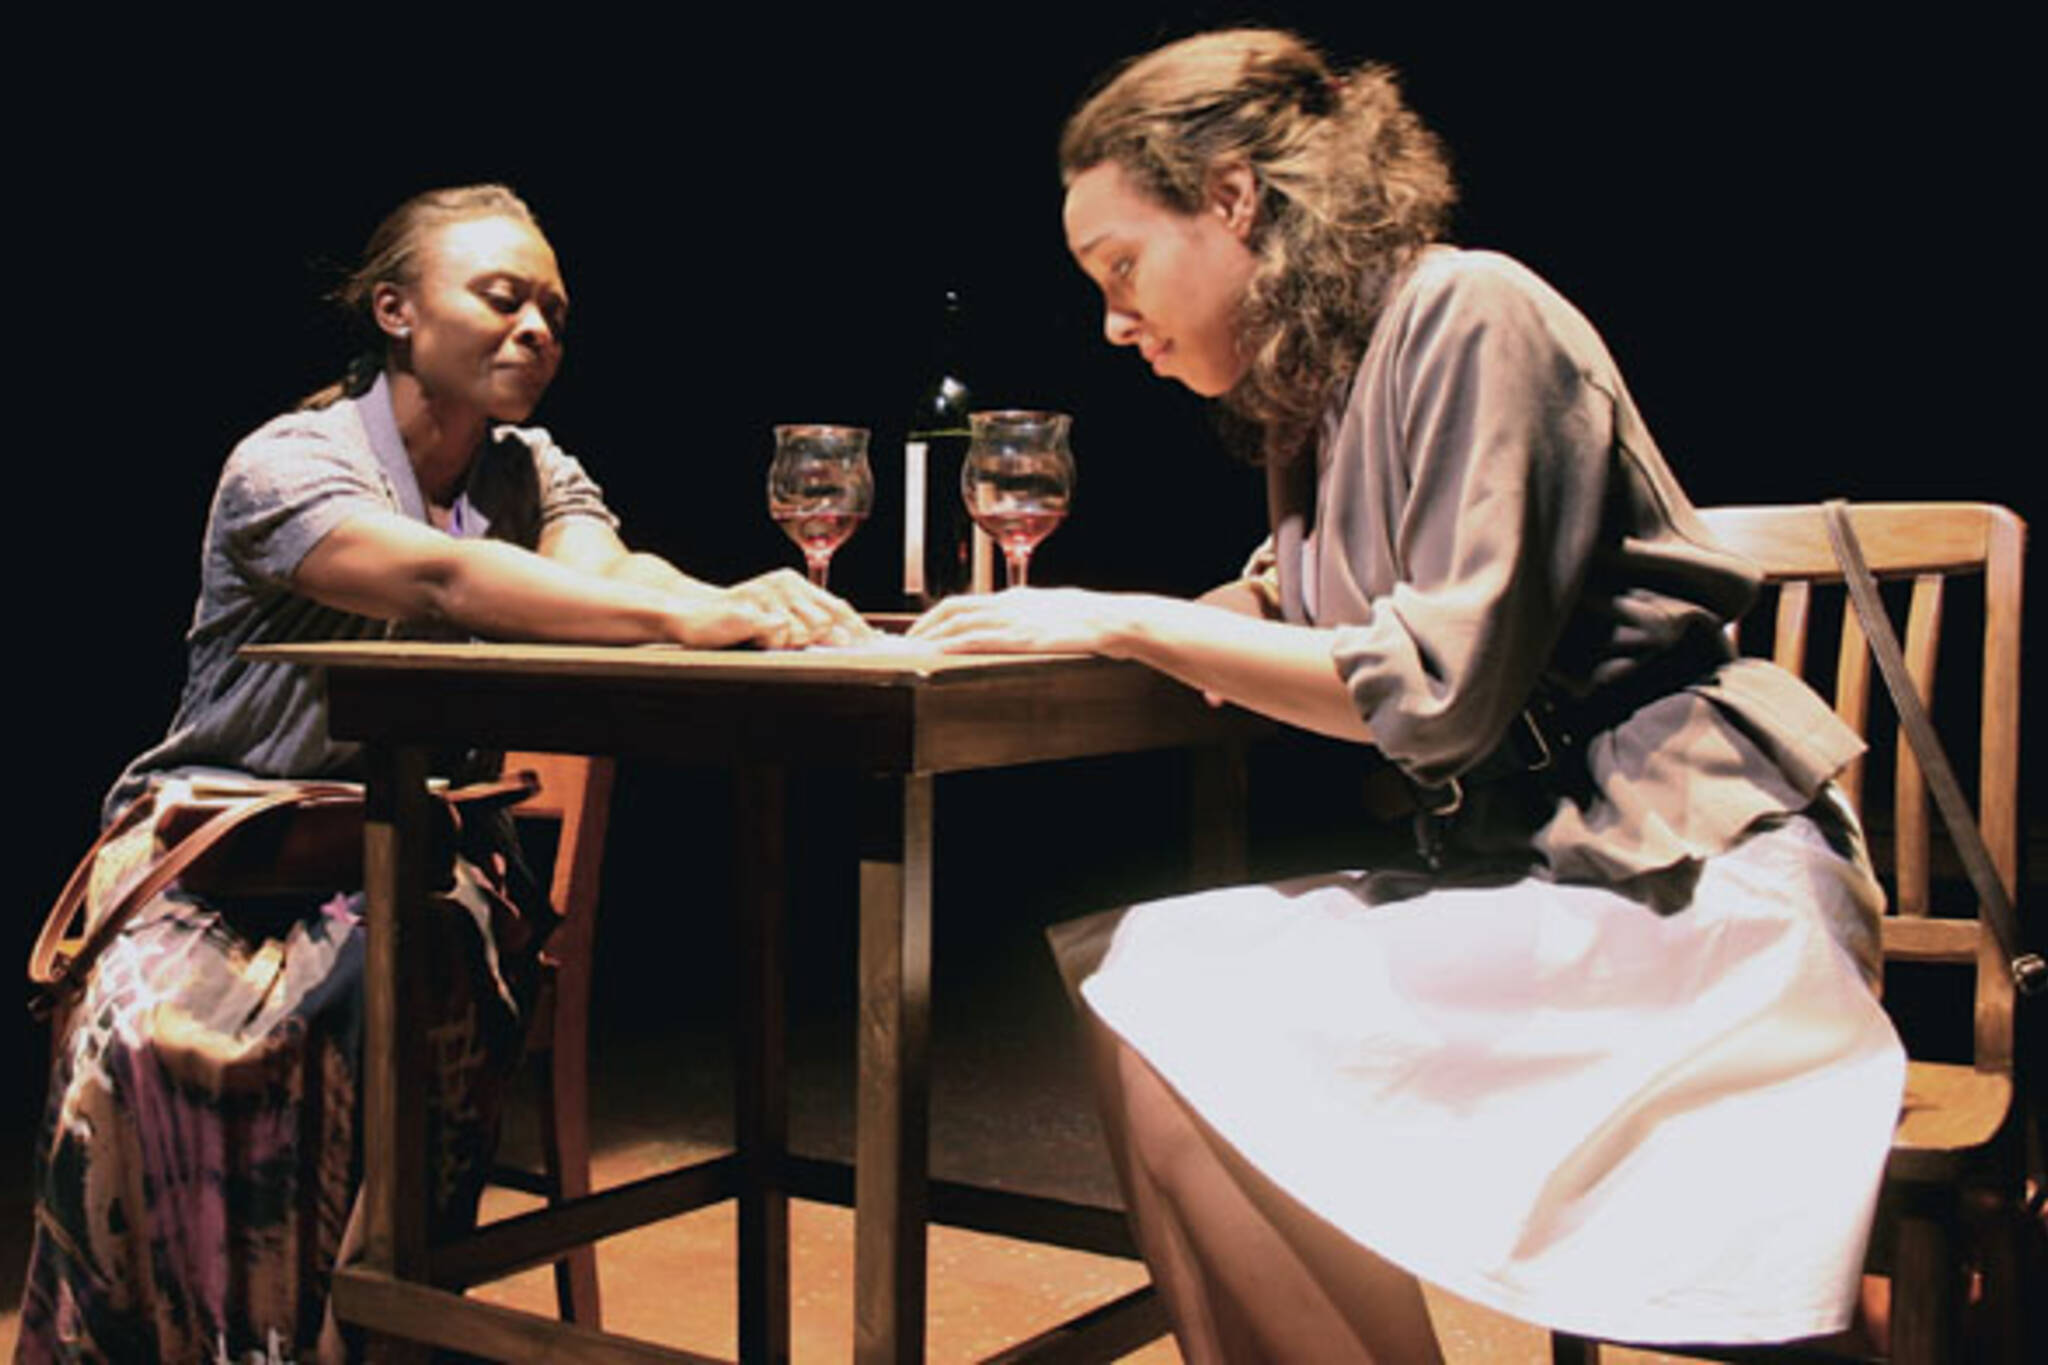 The Overwhelming at the Berkeley Street Theatre